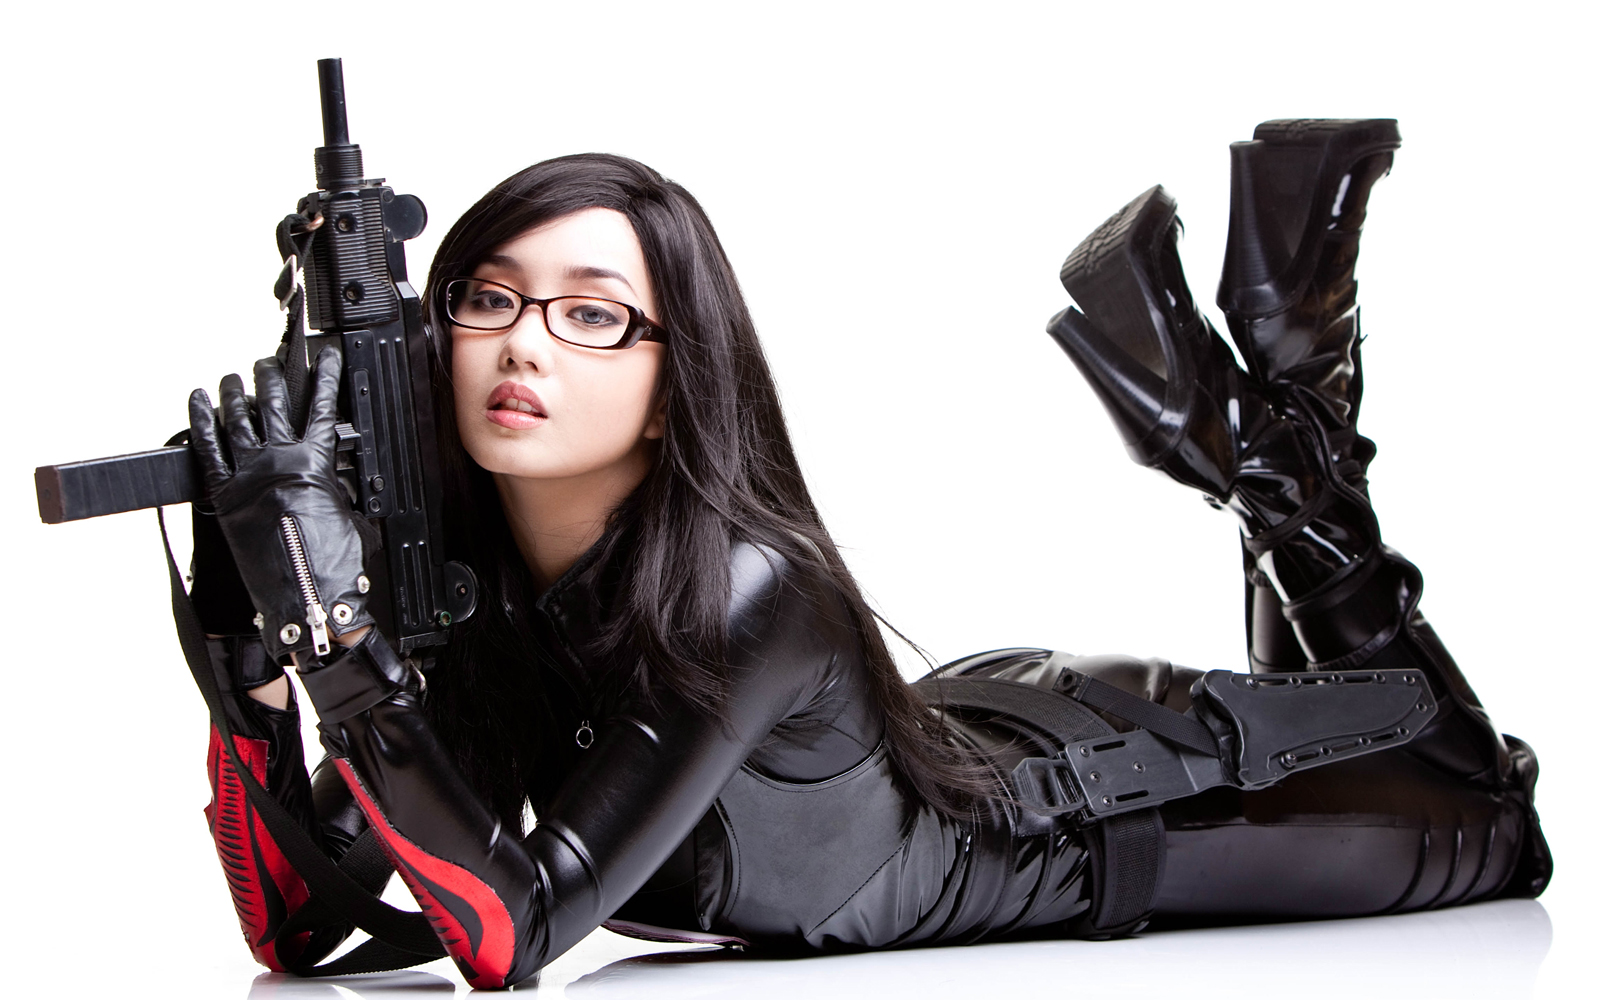 http://4.bp.blogspot.com/-CEloaVSl0yU/T5P8z5AiD_I/AAAAAAAAE1c/i0HSmrT5YuE/s1600/Uzi_Girls_With_Guns_Asian_Theme_Desktop_Wallpapers_Vvallpaper.net.jpg